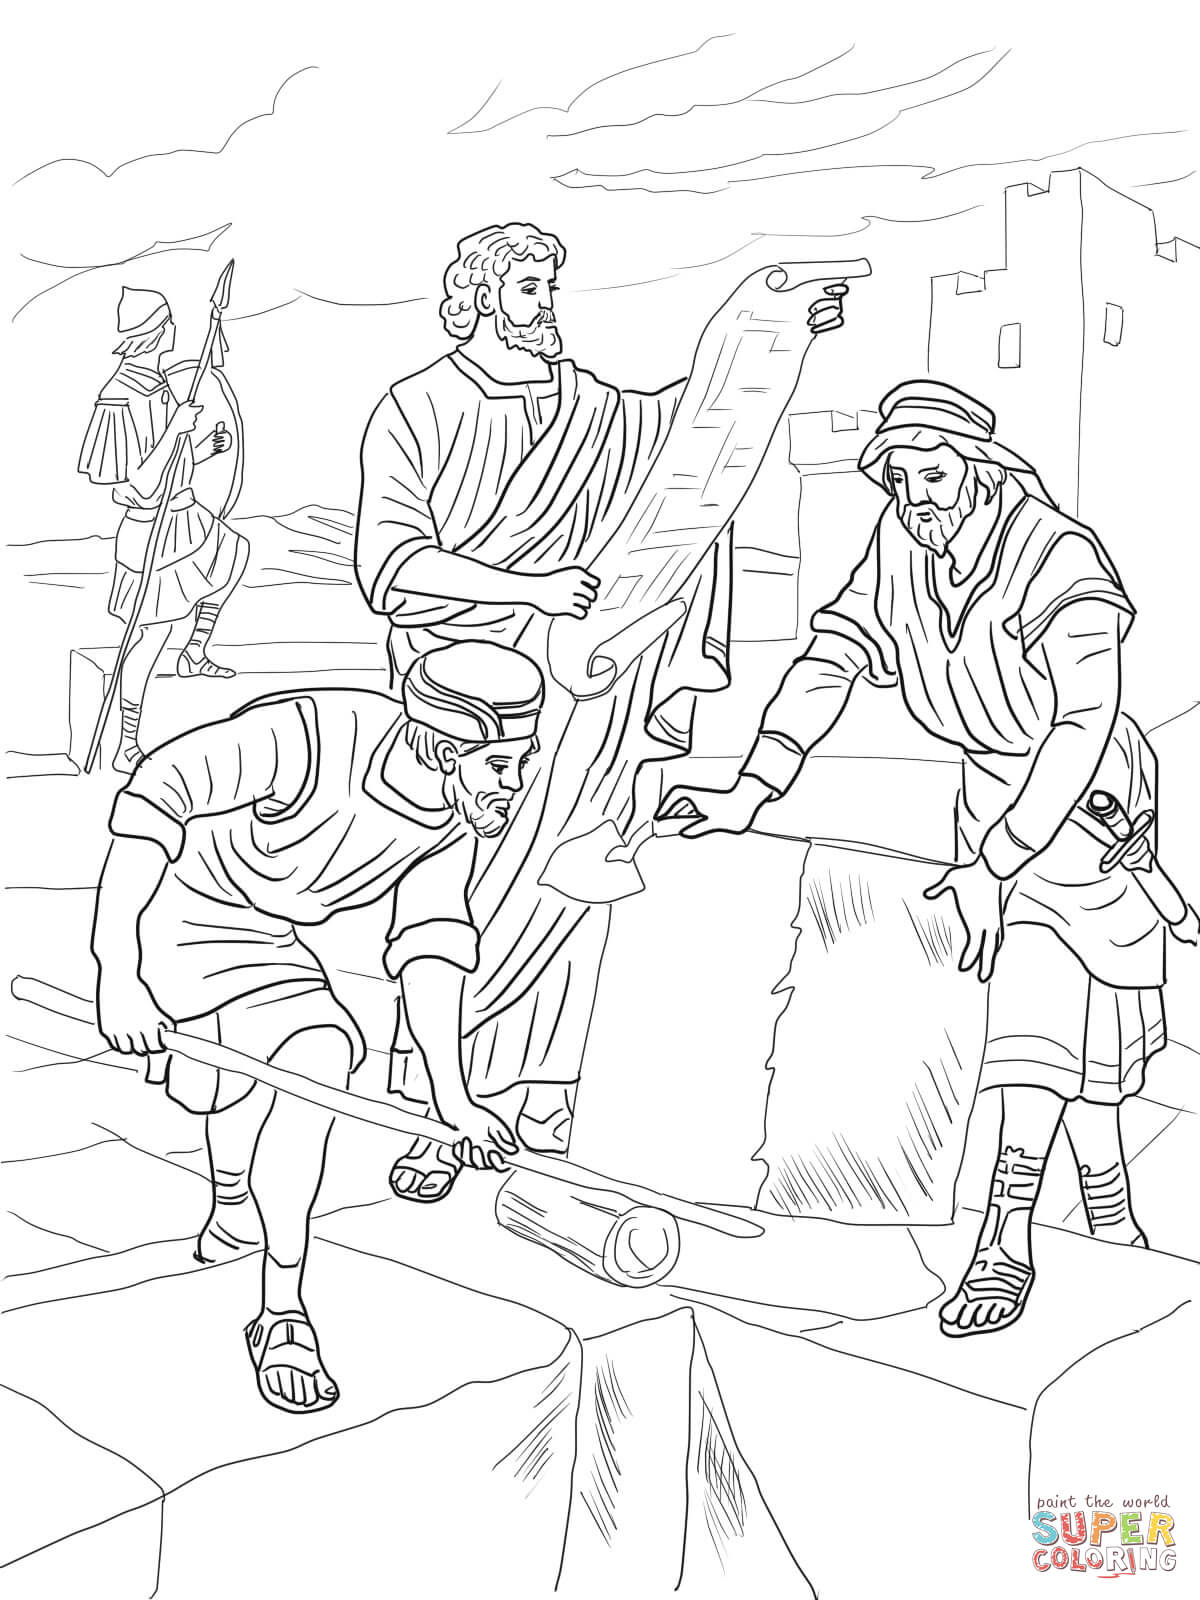 nehemiah coloring page nehemiah coloring pages craft coloring pages nehemiah coloring page